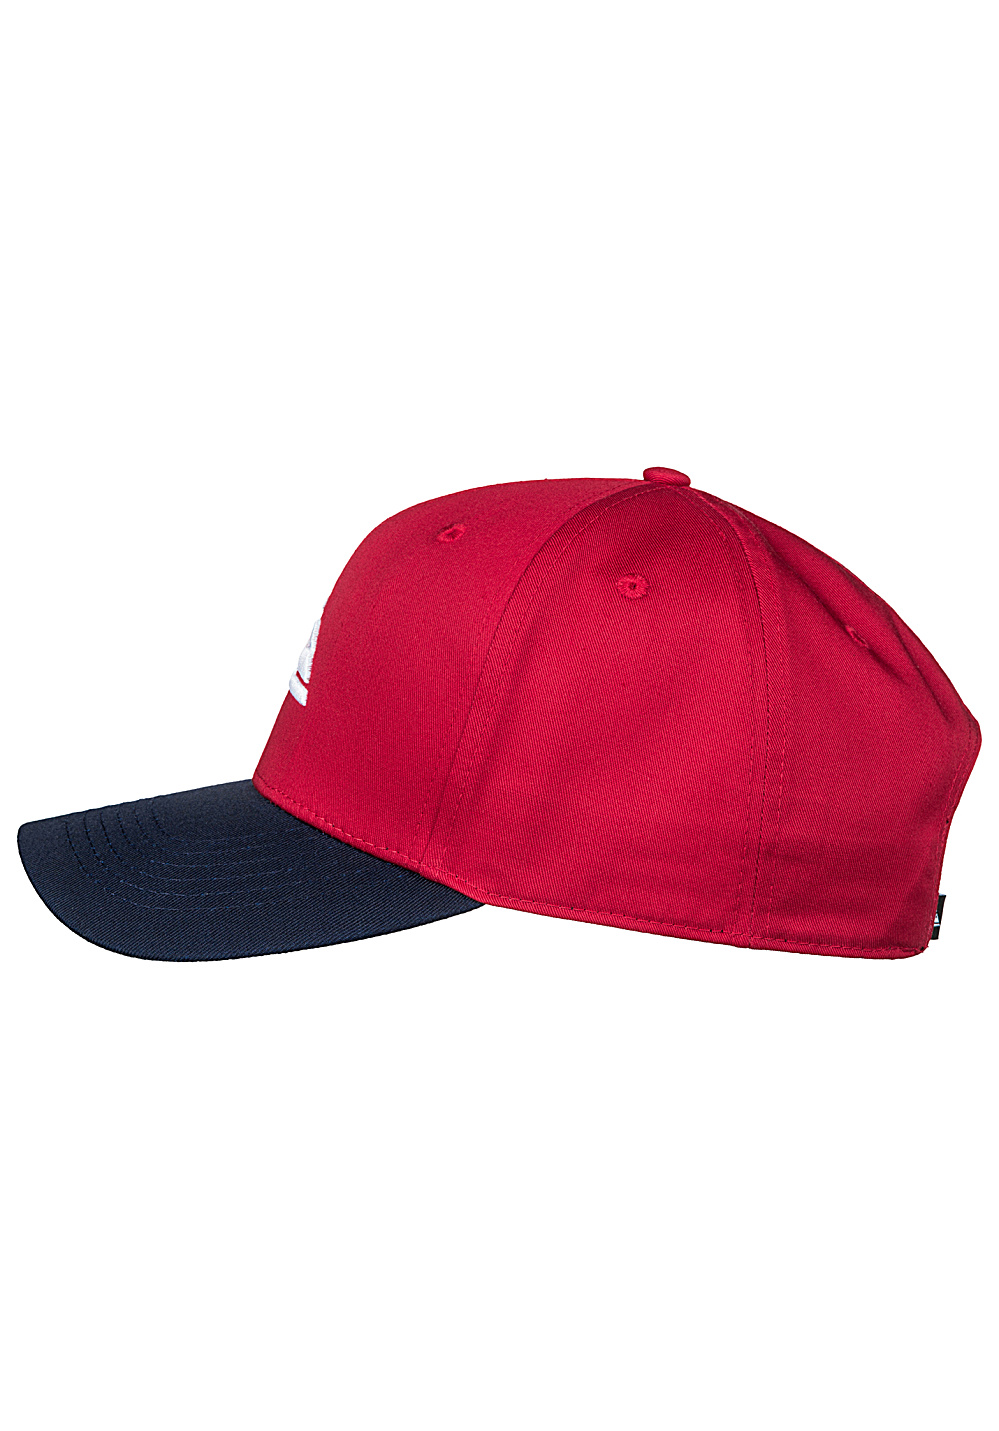 897ebc82f96 ... Quiksilver Decades - Snapback Cap for Men - Red. Back to Overview. 1   2  3. Previous. Next